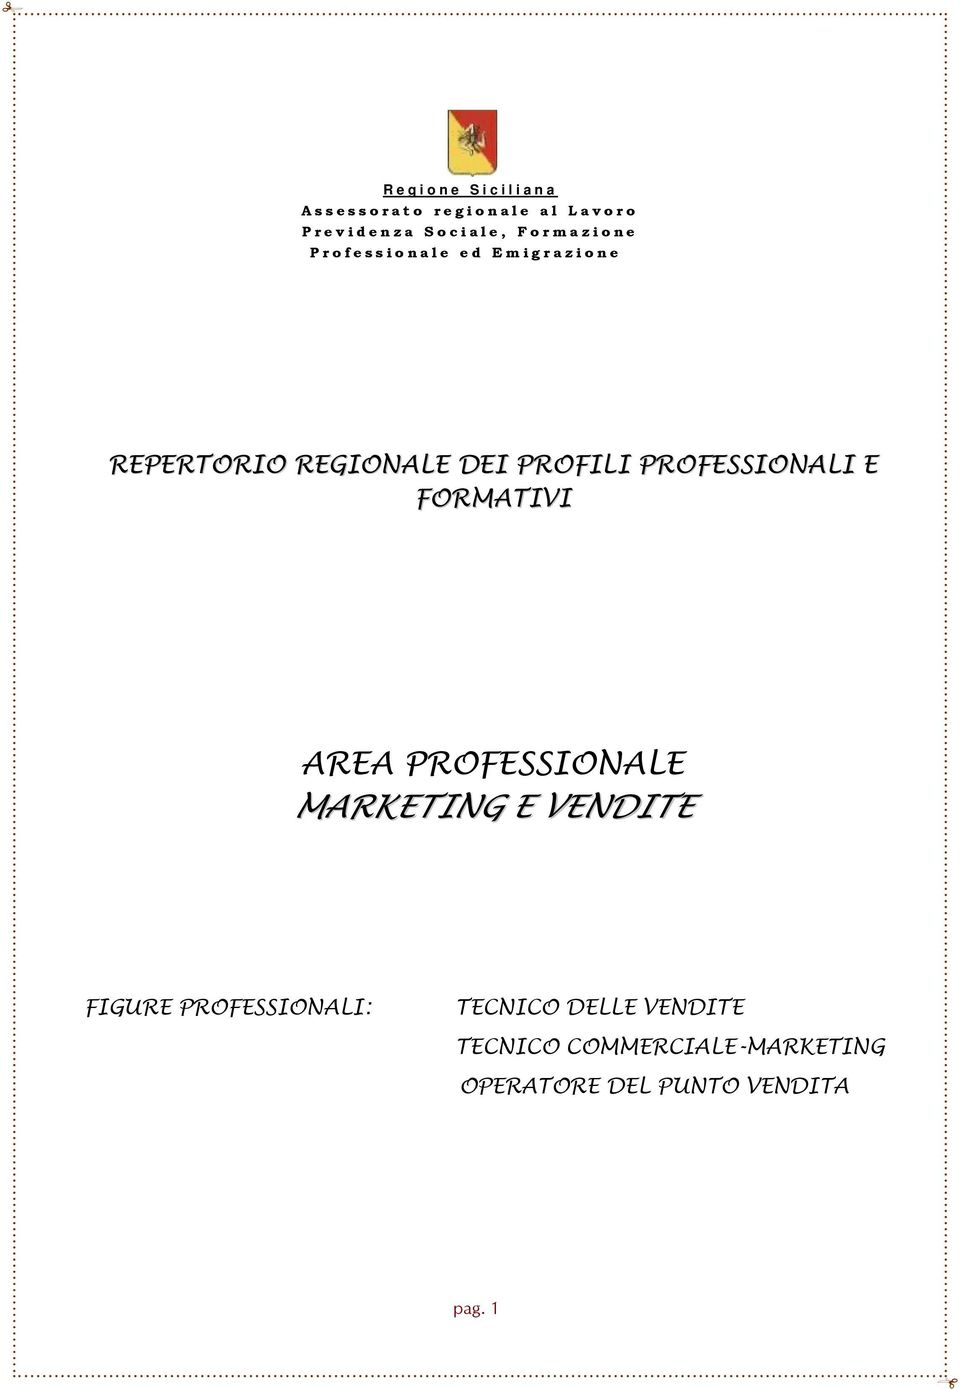 PROFESSIONALI E FORMATIVI AREA PROFESSIONALE MARKETING E VENDITE FIGURE